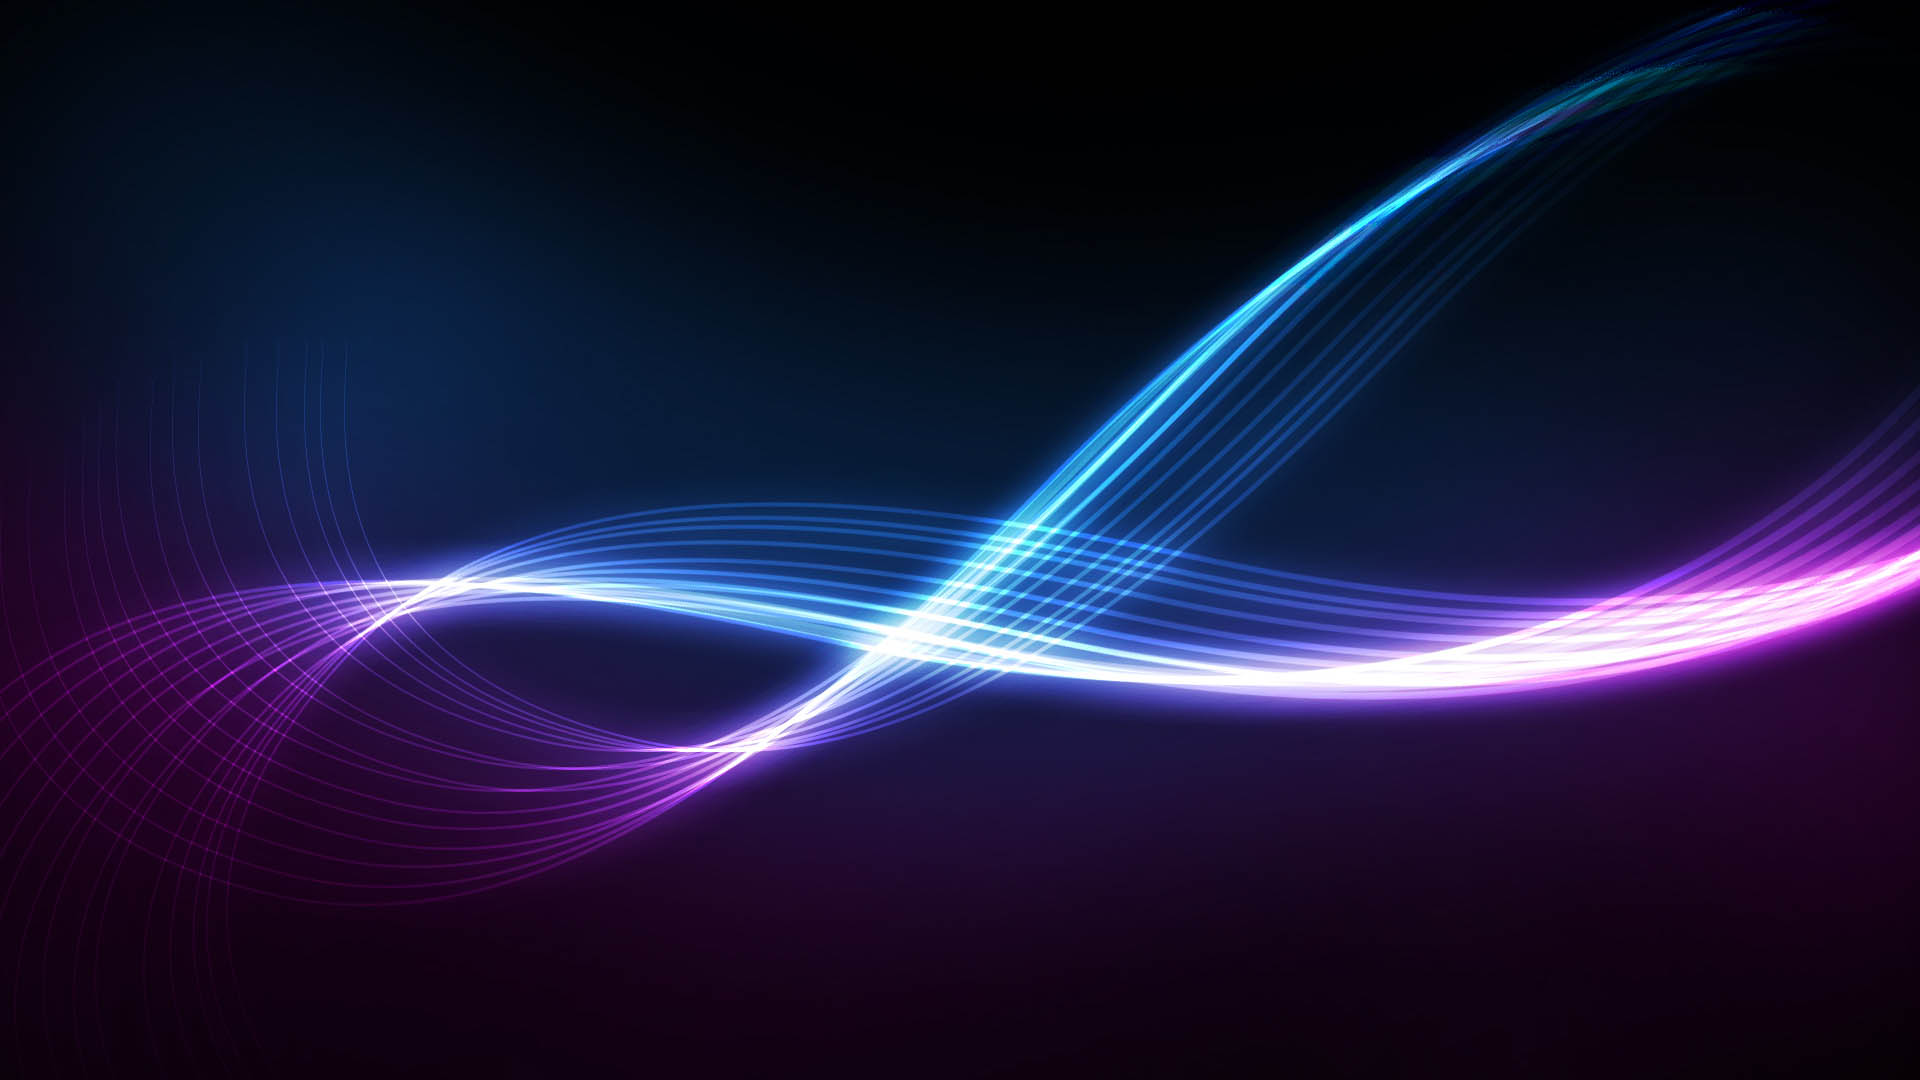 best abstract hd wallpaper 1920x1080 - photo #15